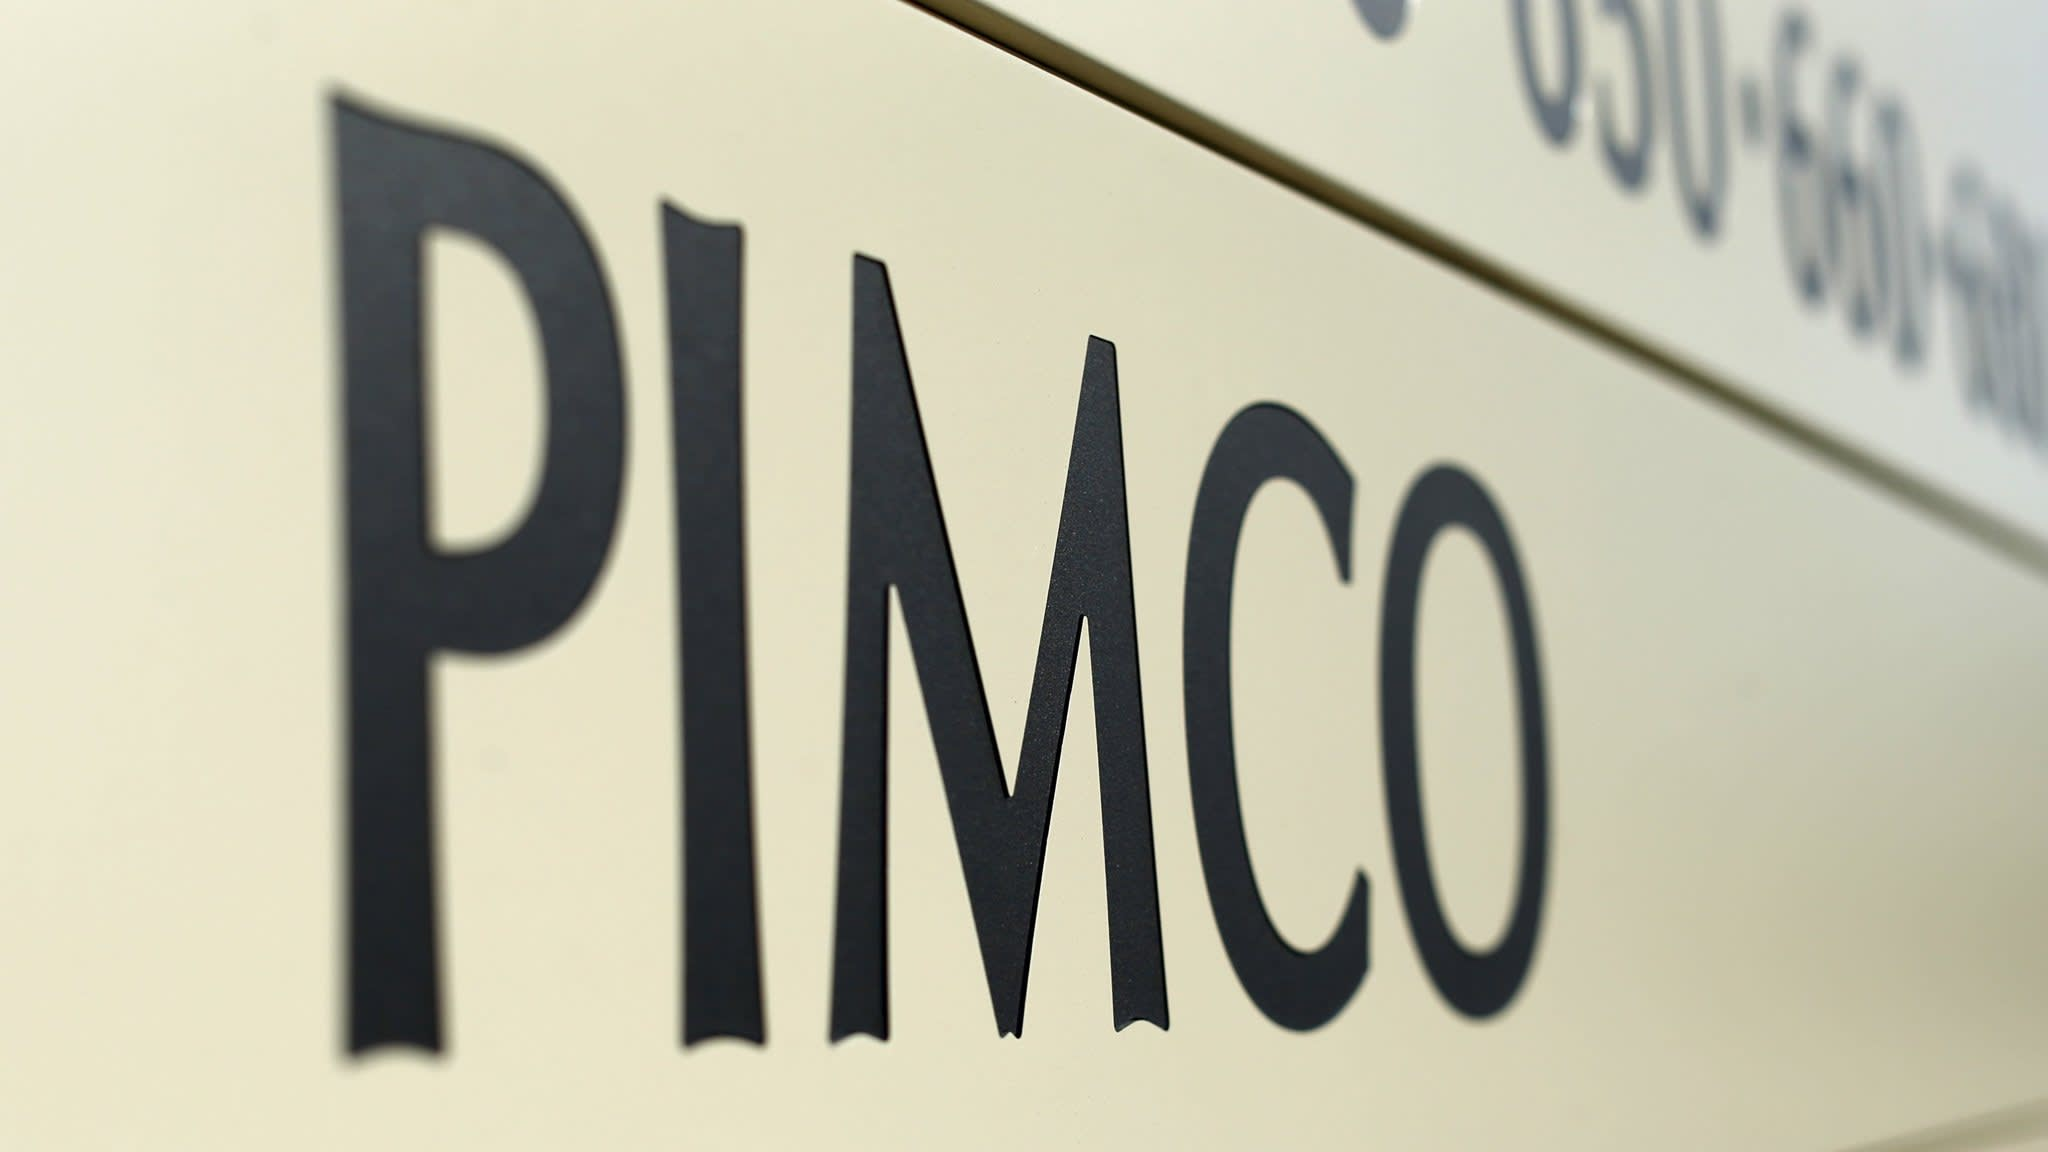 Pimco calls top in 10-year Treasury yields at 3%